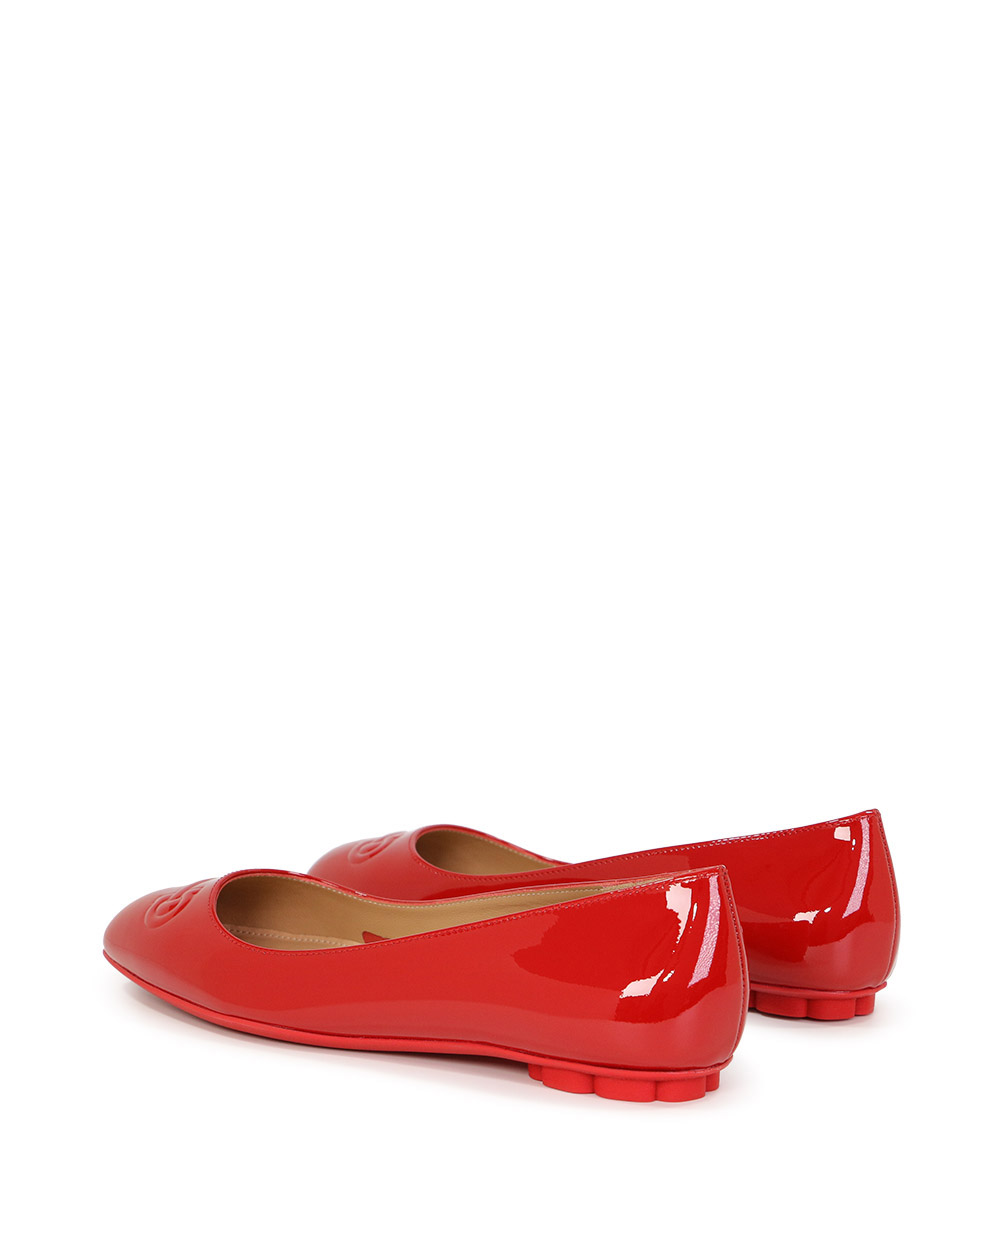 BRONI Patent Leather Casual Flats 2